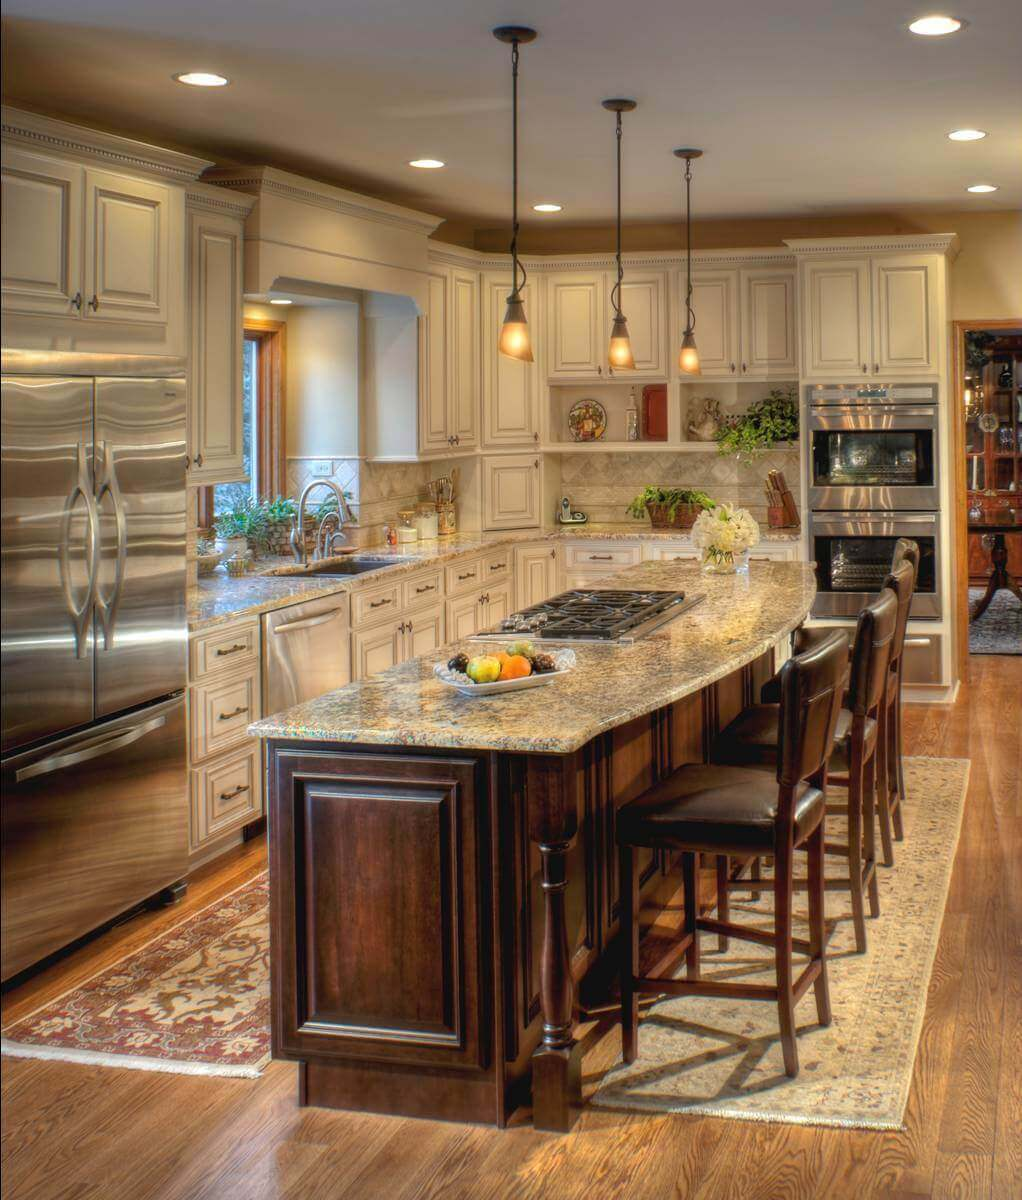 Kitchen Pictures With Islands: 68+Deluxe Custom Kitchen Island Ideas (Jaw Dropping Designs